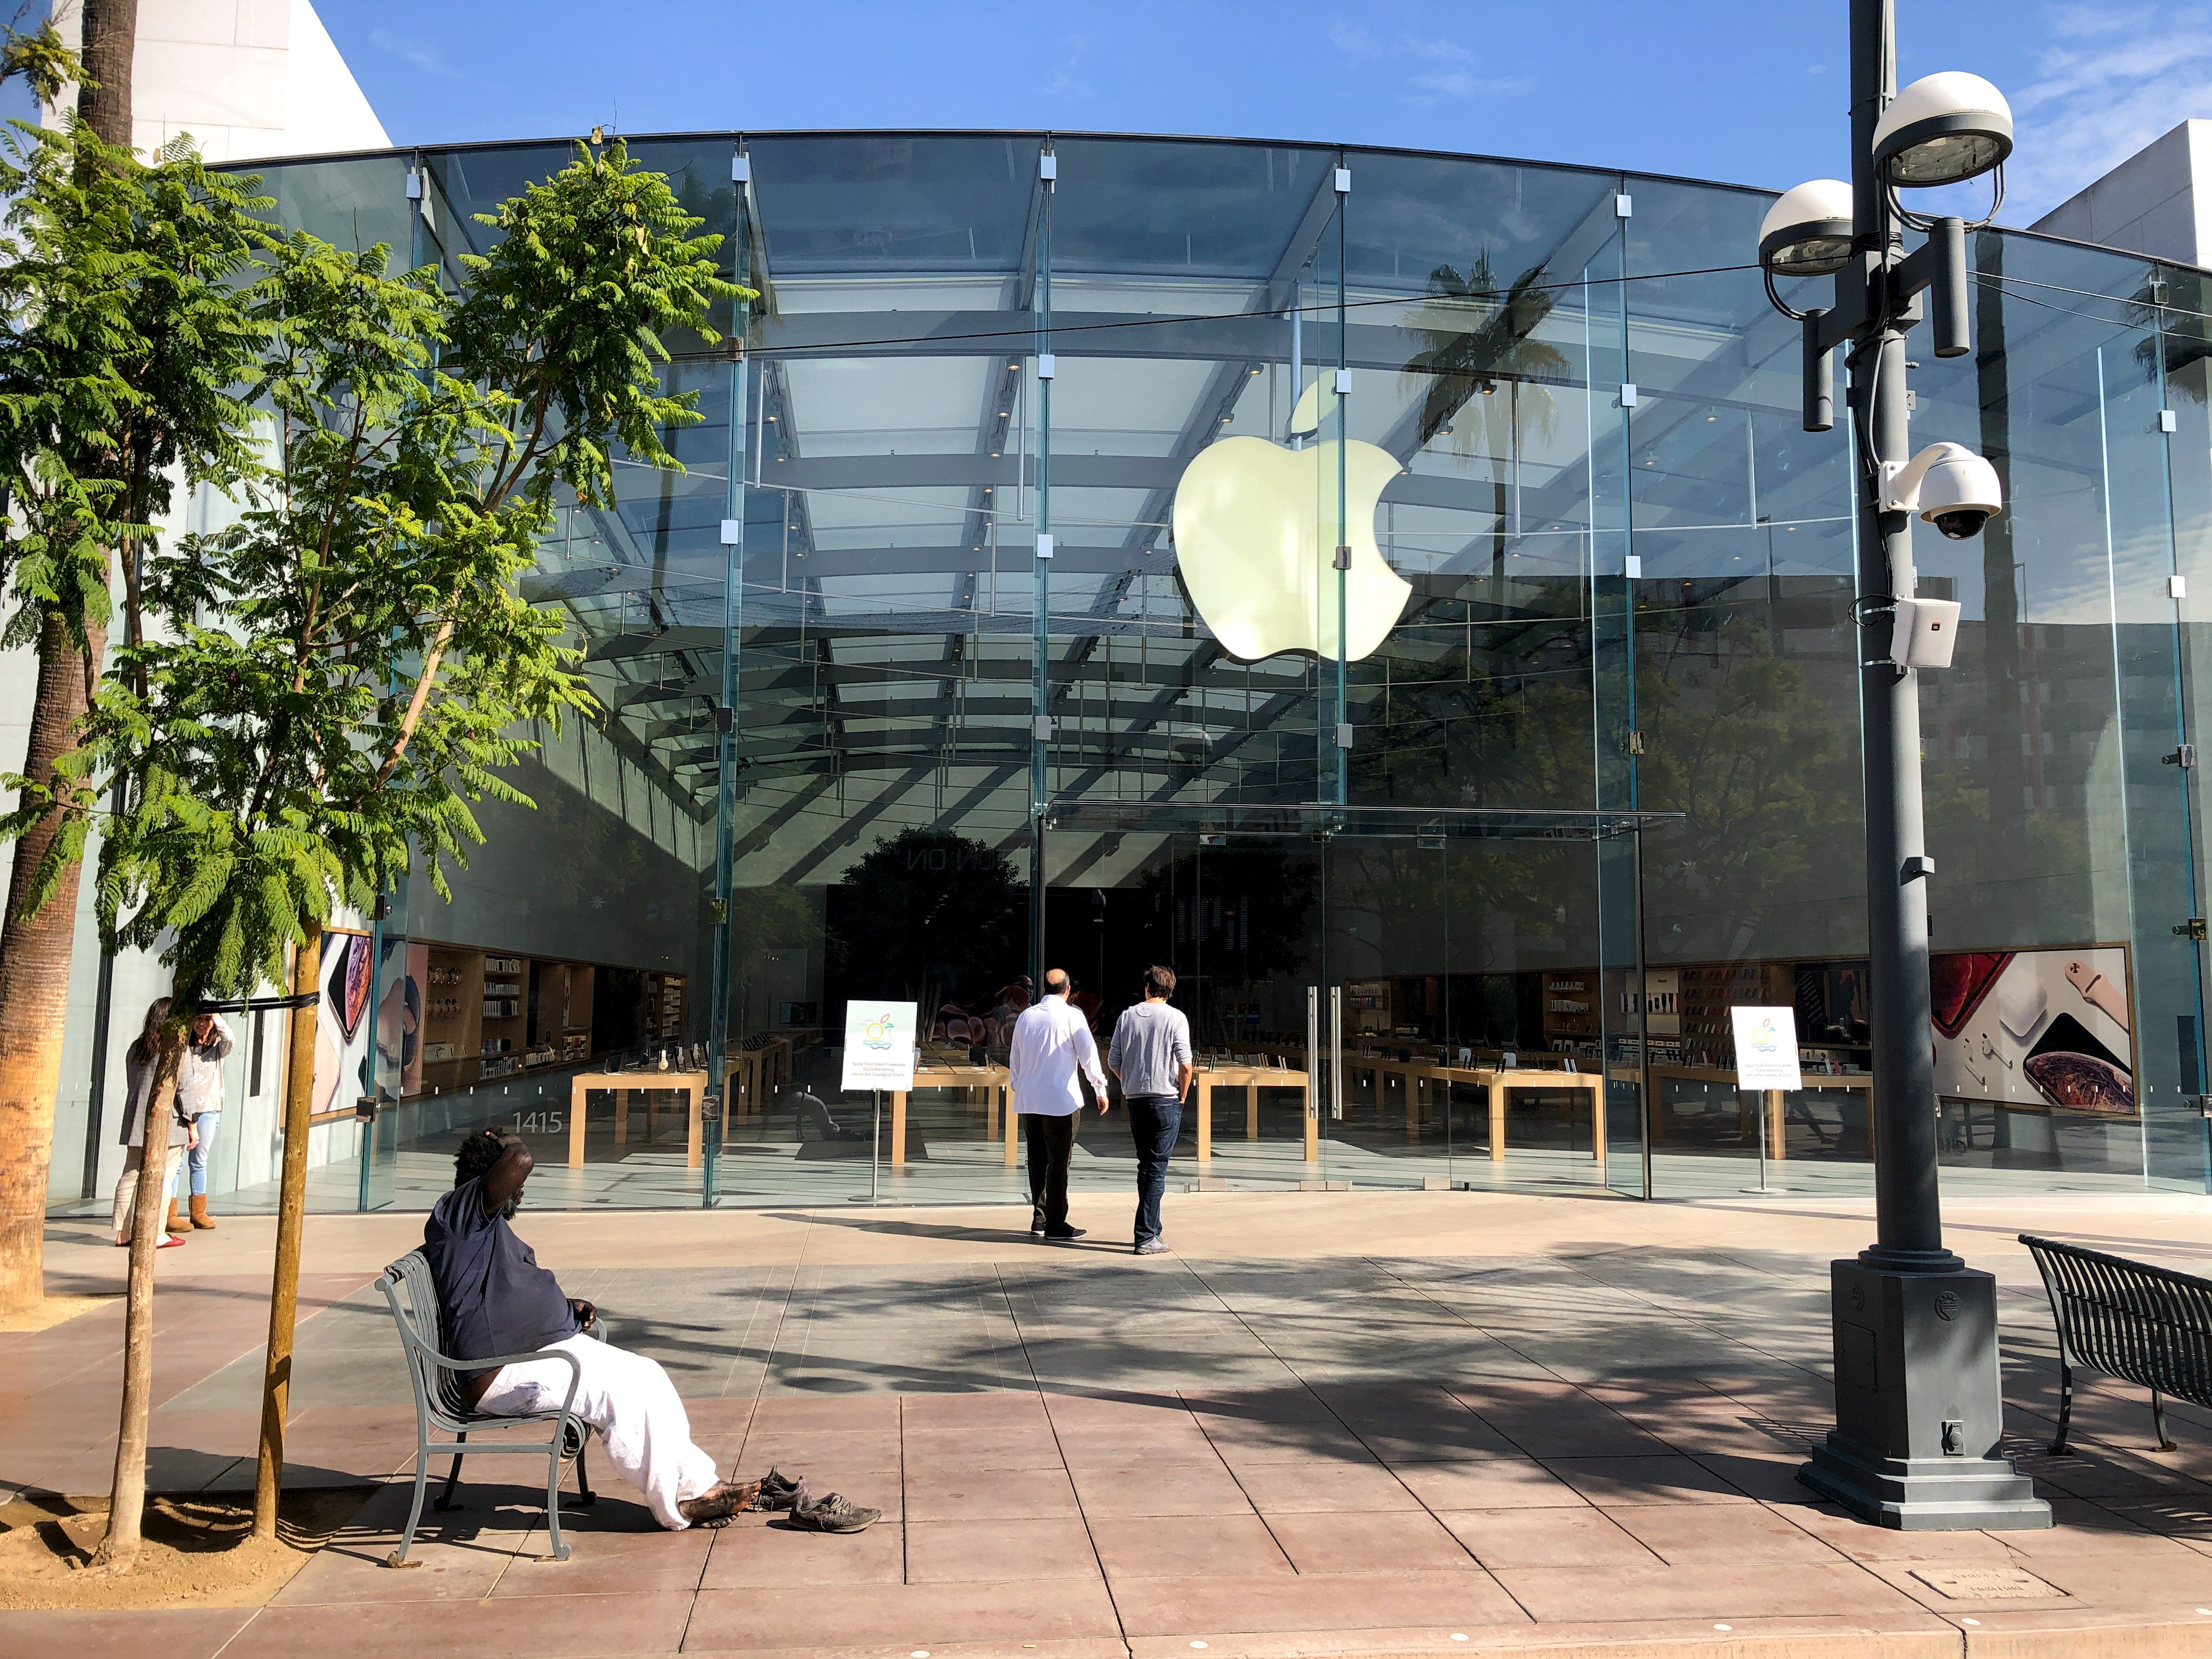 The new re-designed Apple Store in Santa Monica part of the 100 flagship Apple Stores getting a major makeover. The store is now focused on four areas--the Forum, Avenues and Grove, where the Genius support staff and Today at Apple instructors congregate.